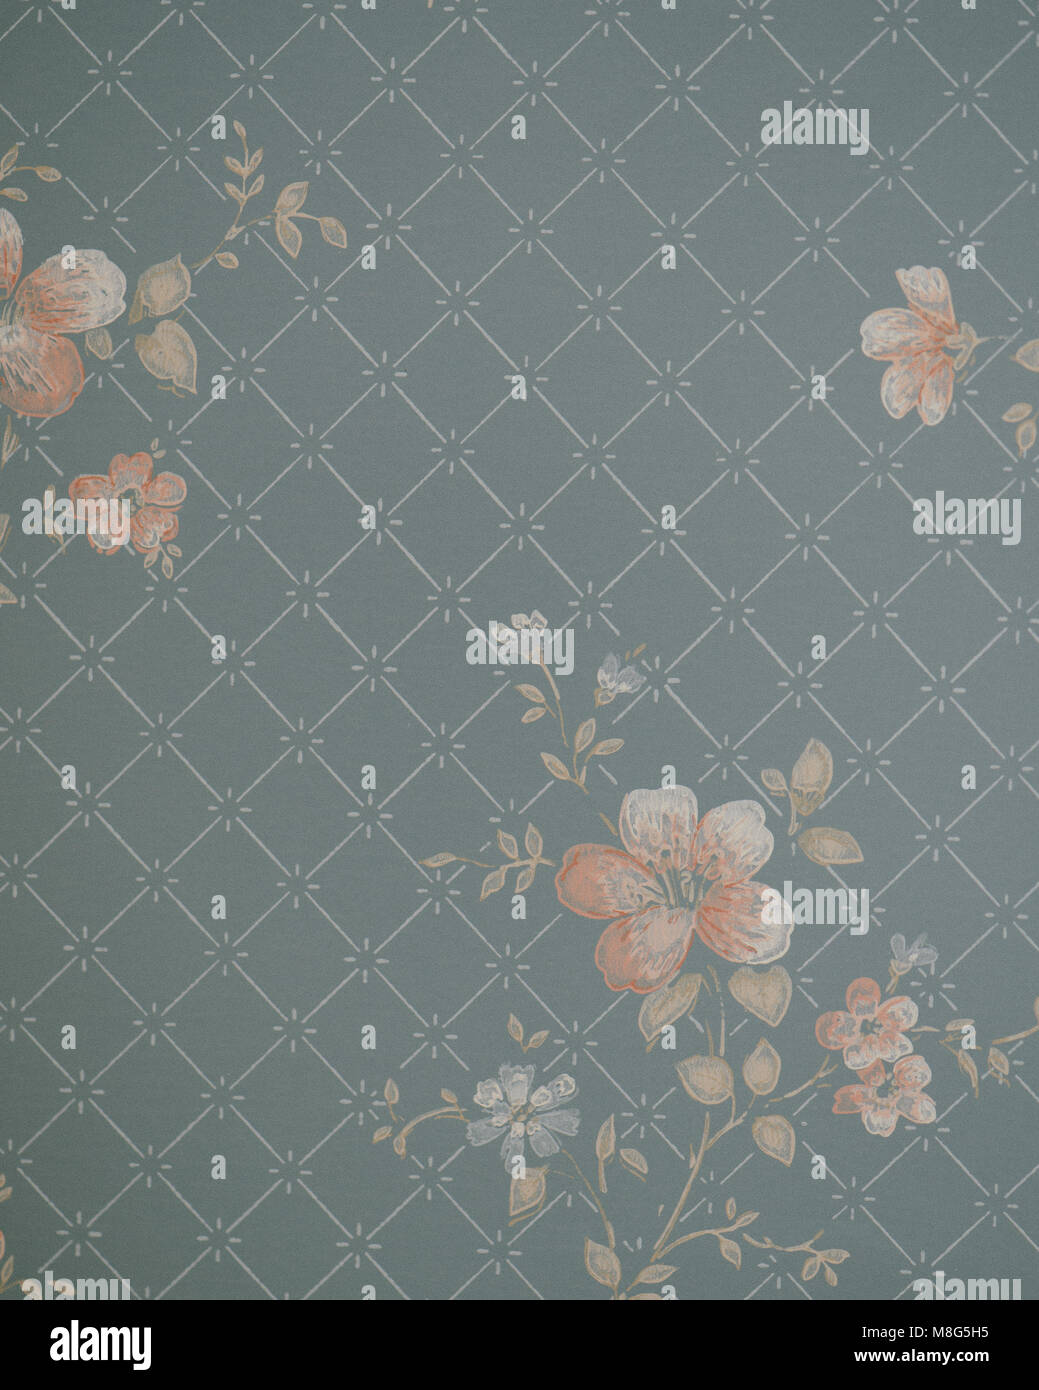 1940 S Vintage Wallpaper With Floral Pattern Stock Photo